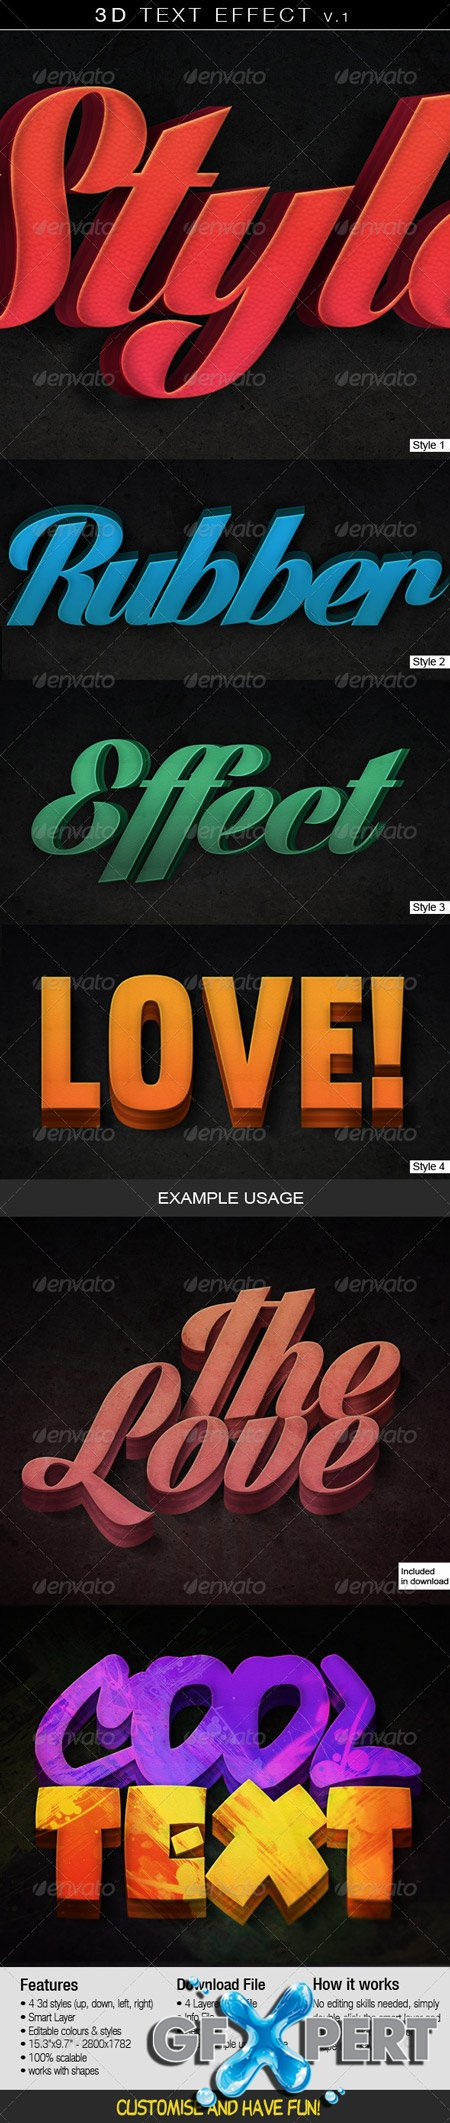 GraphicRiver 3D Text Effect v.1 4921117